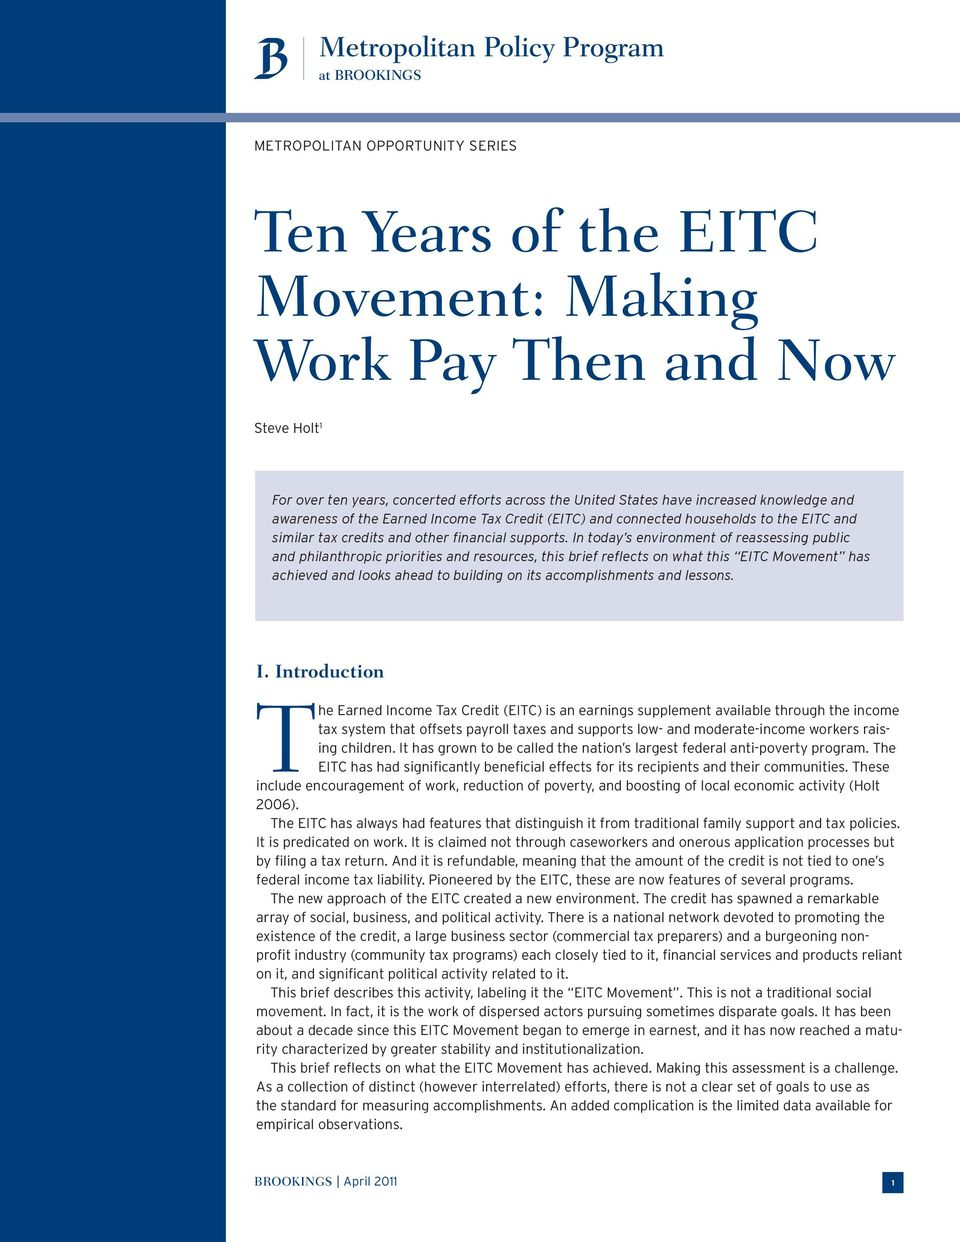 In today s environment of reassessing public and philanthropic priorities and resources, this brief reflects on what this EITC Movement has achieved and looks ahead to building on its accomplishments